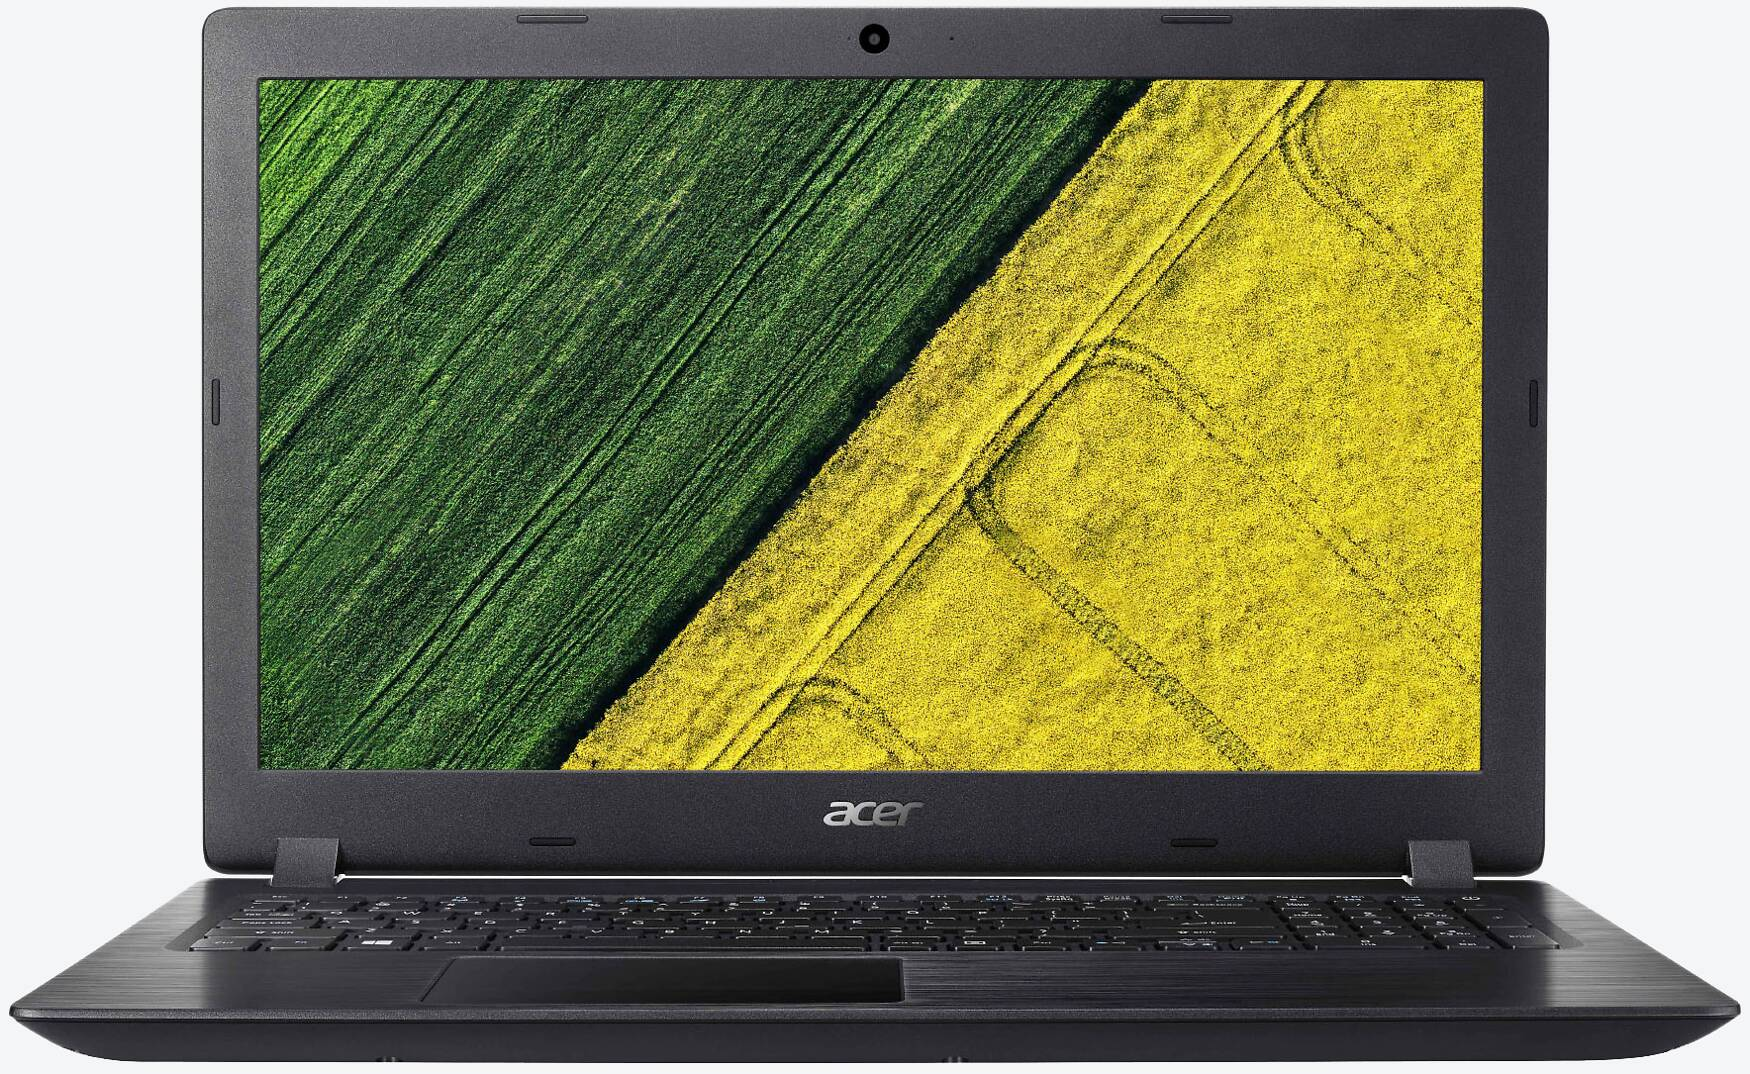 Acer Aspire 3 A315-54-58ZK